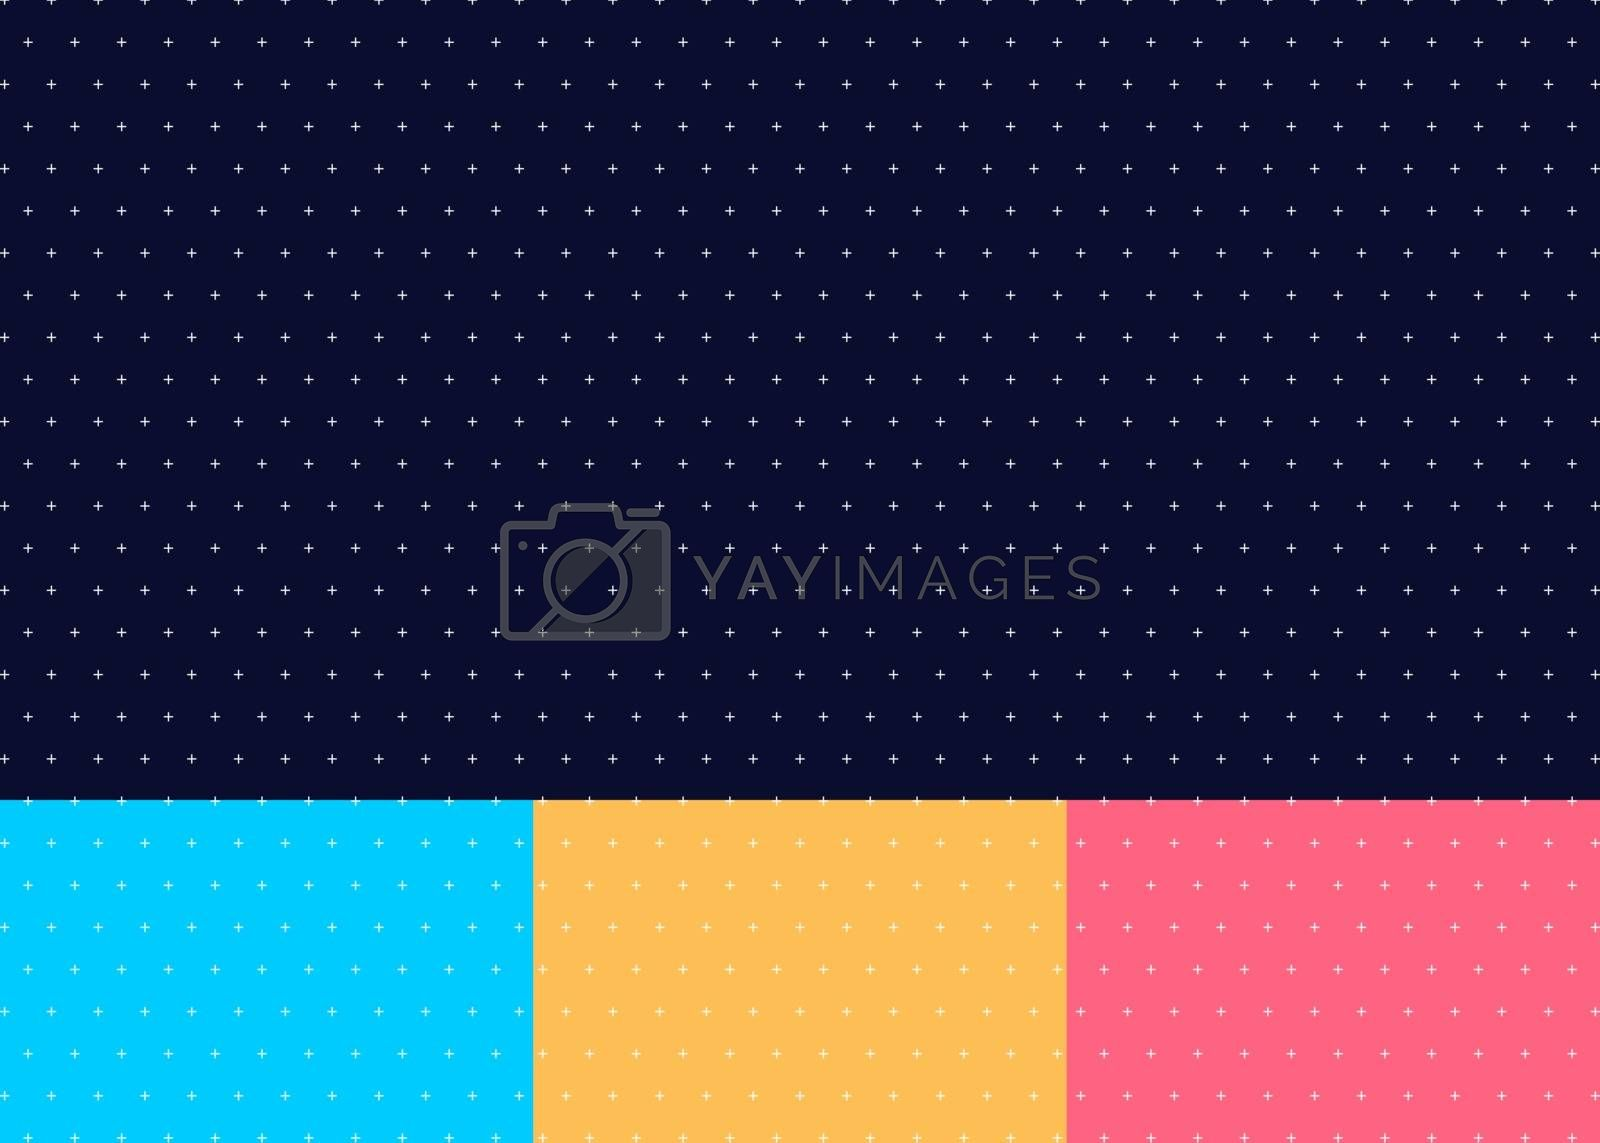 Set of abstract cross or plus pattern seamless blue, yellow, pink color background minimal style. Vector illustration